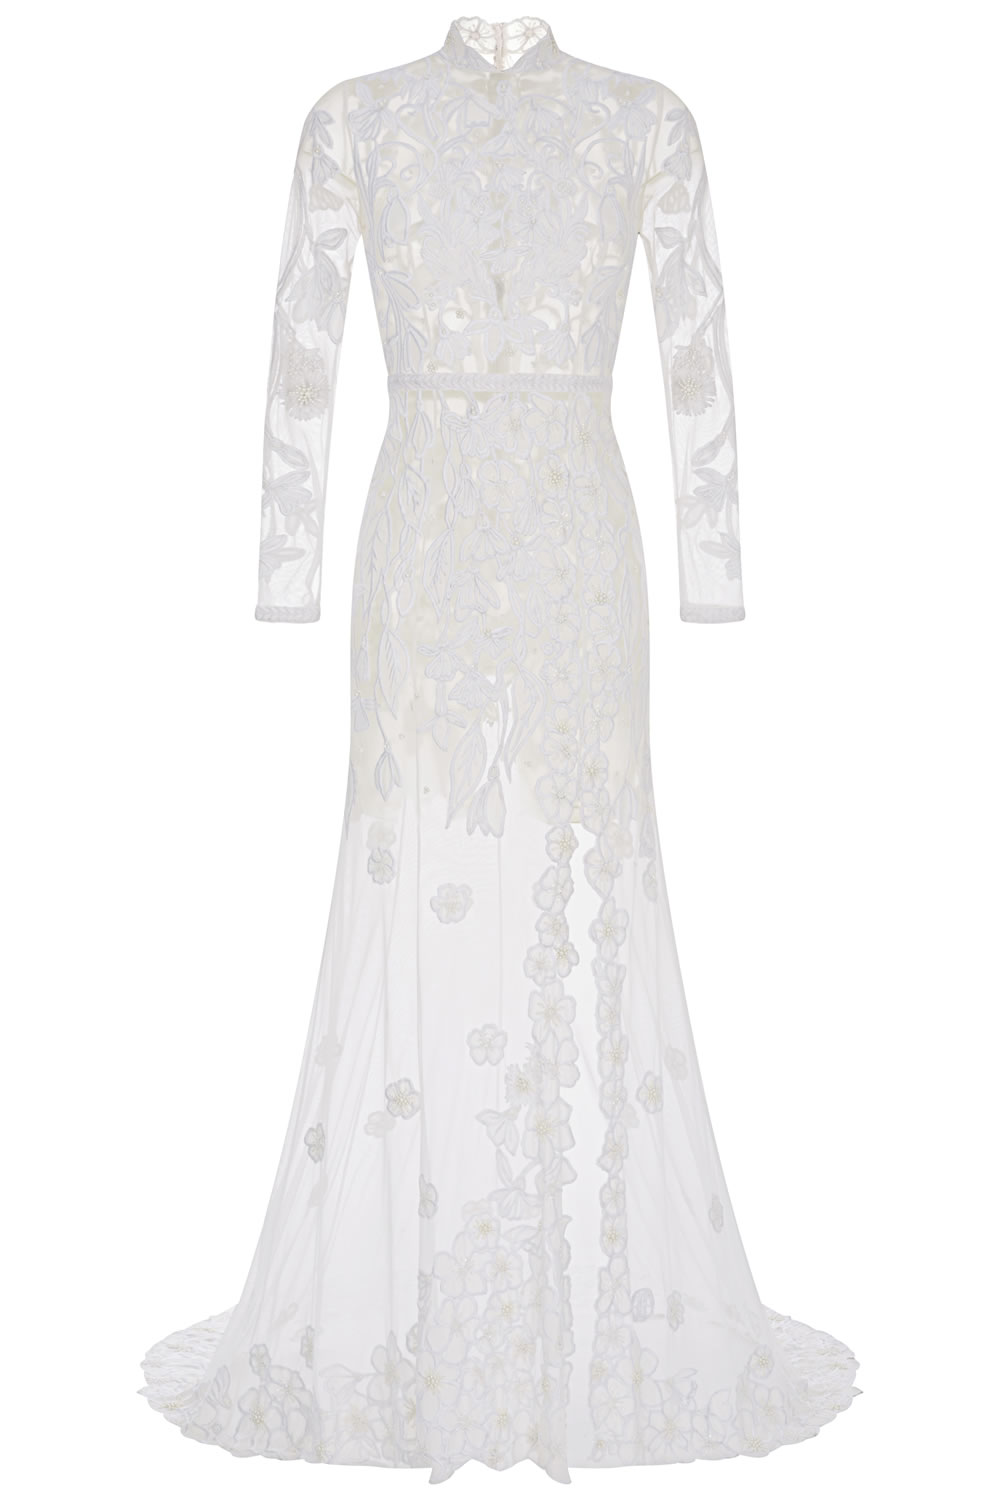 Forget Me Not & Fritillaria Bespoke Wedding Gown 1